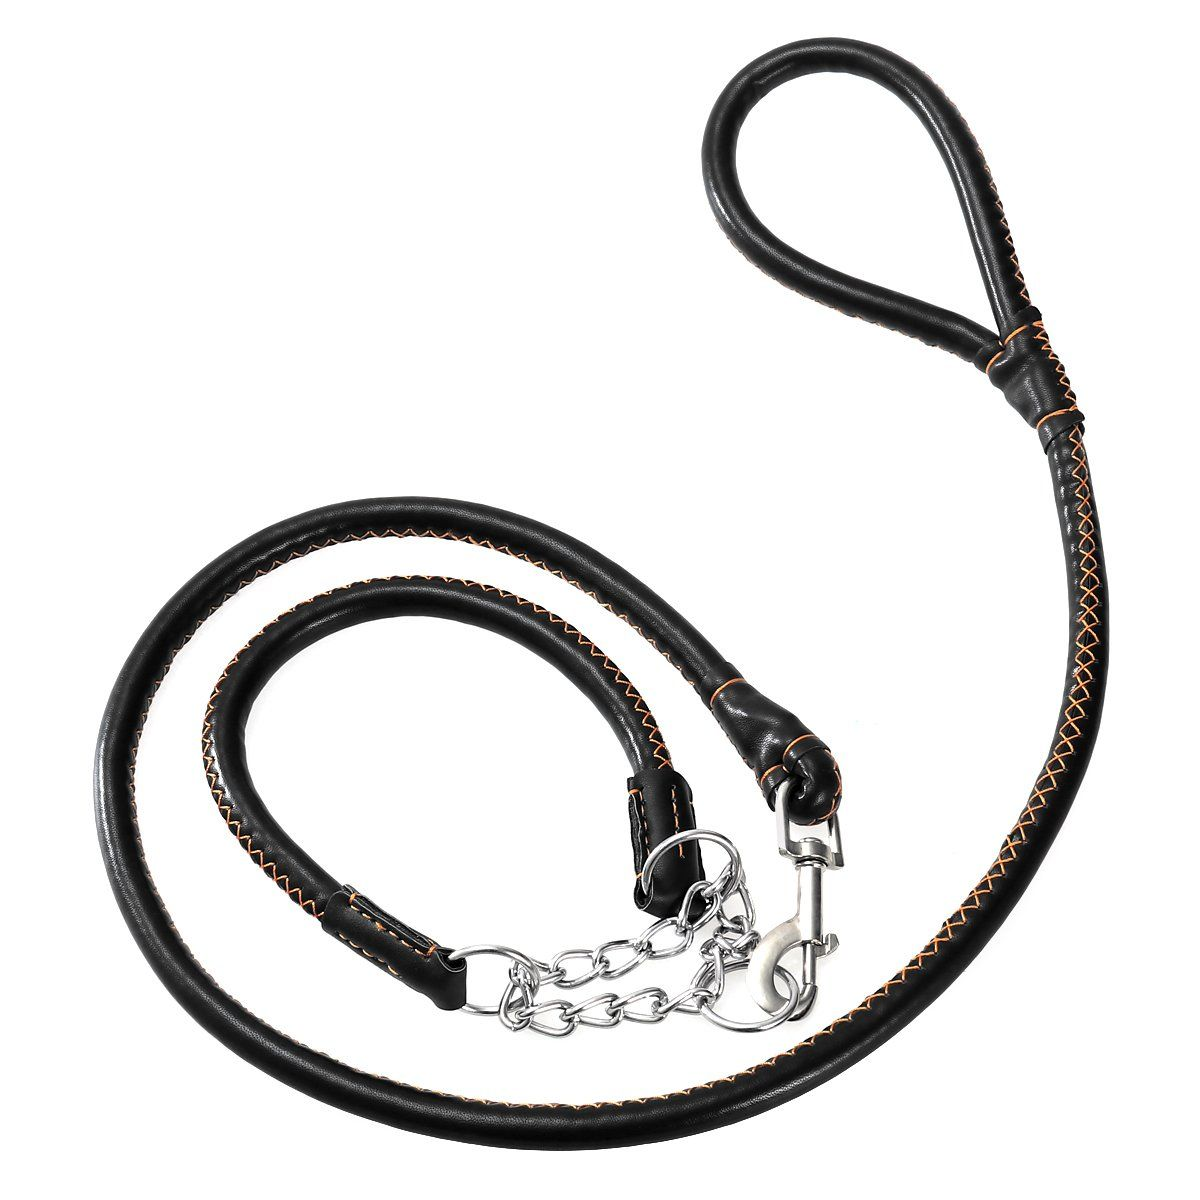 Ueetek Dog Slip Collar Choke Leash With Dog Collar Harness